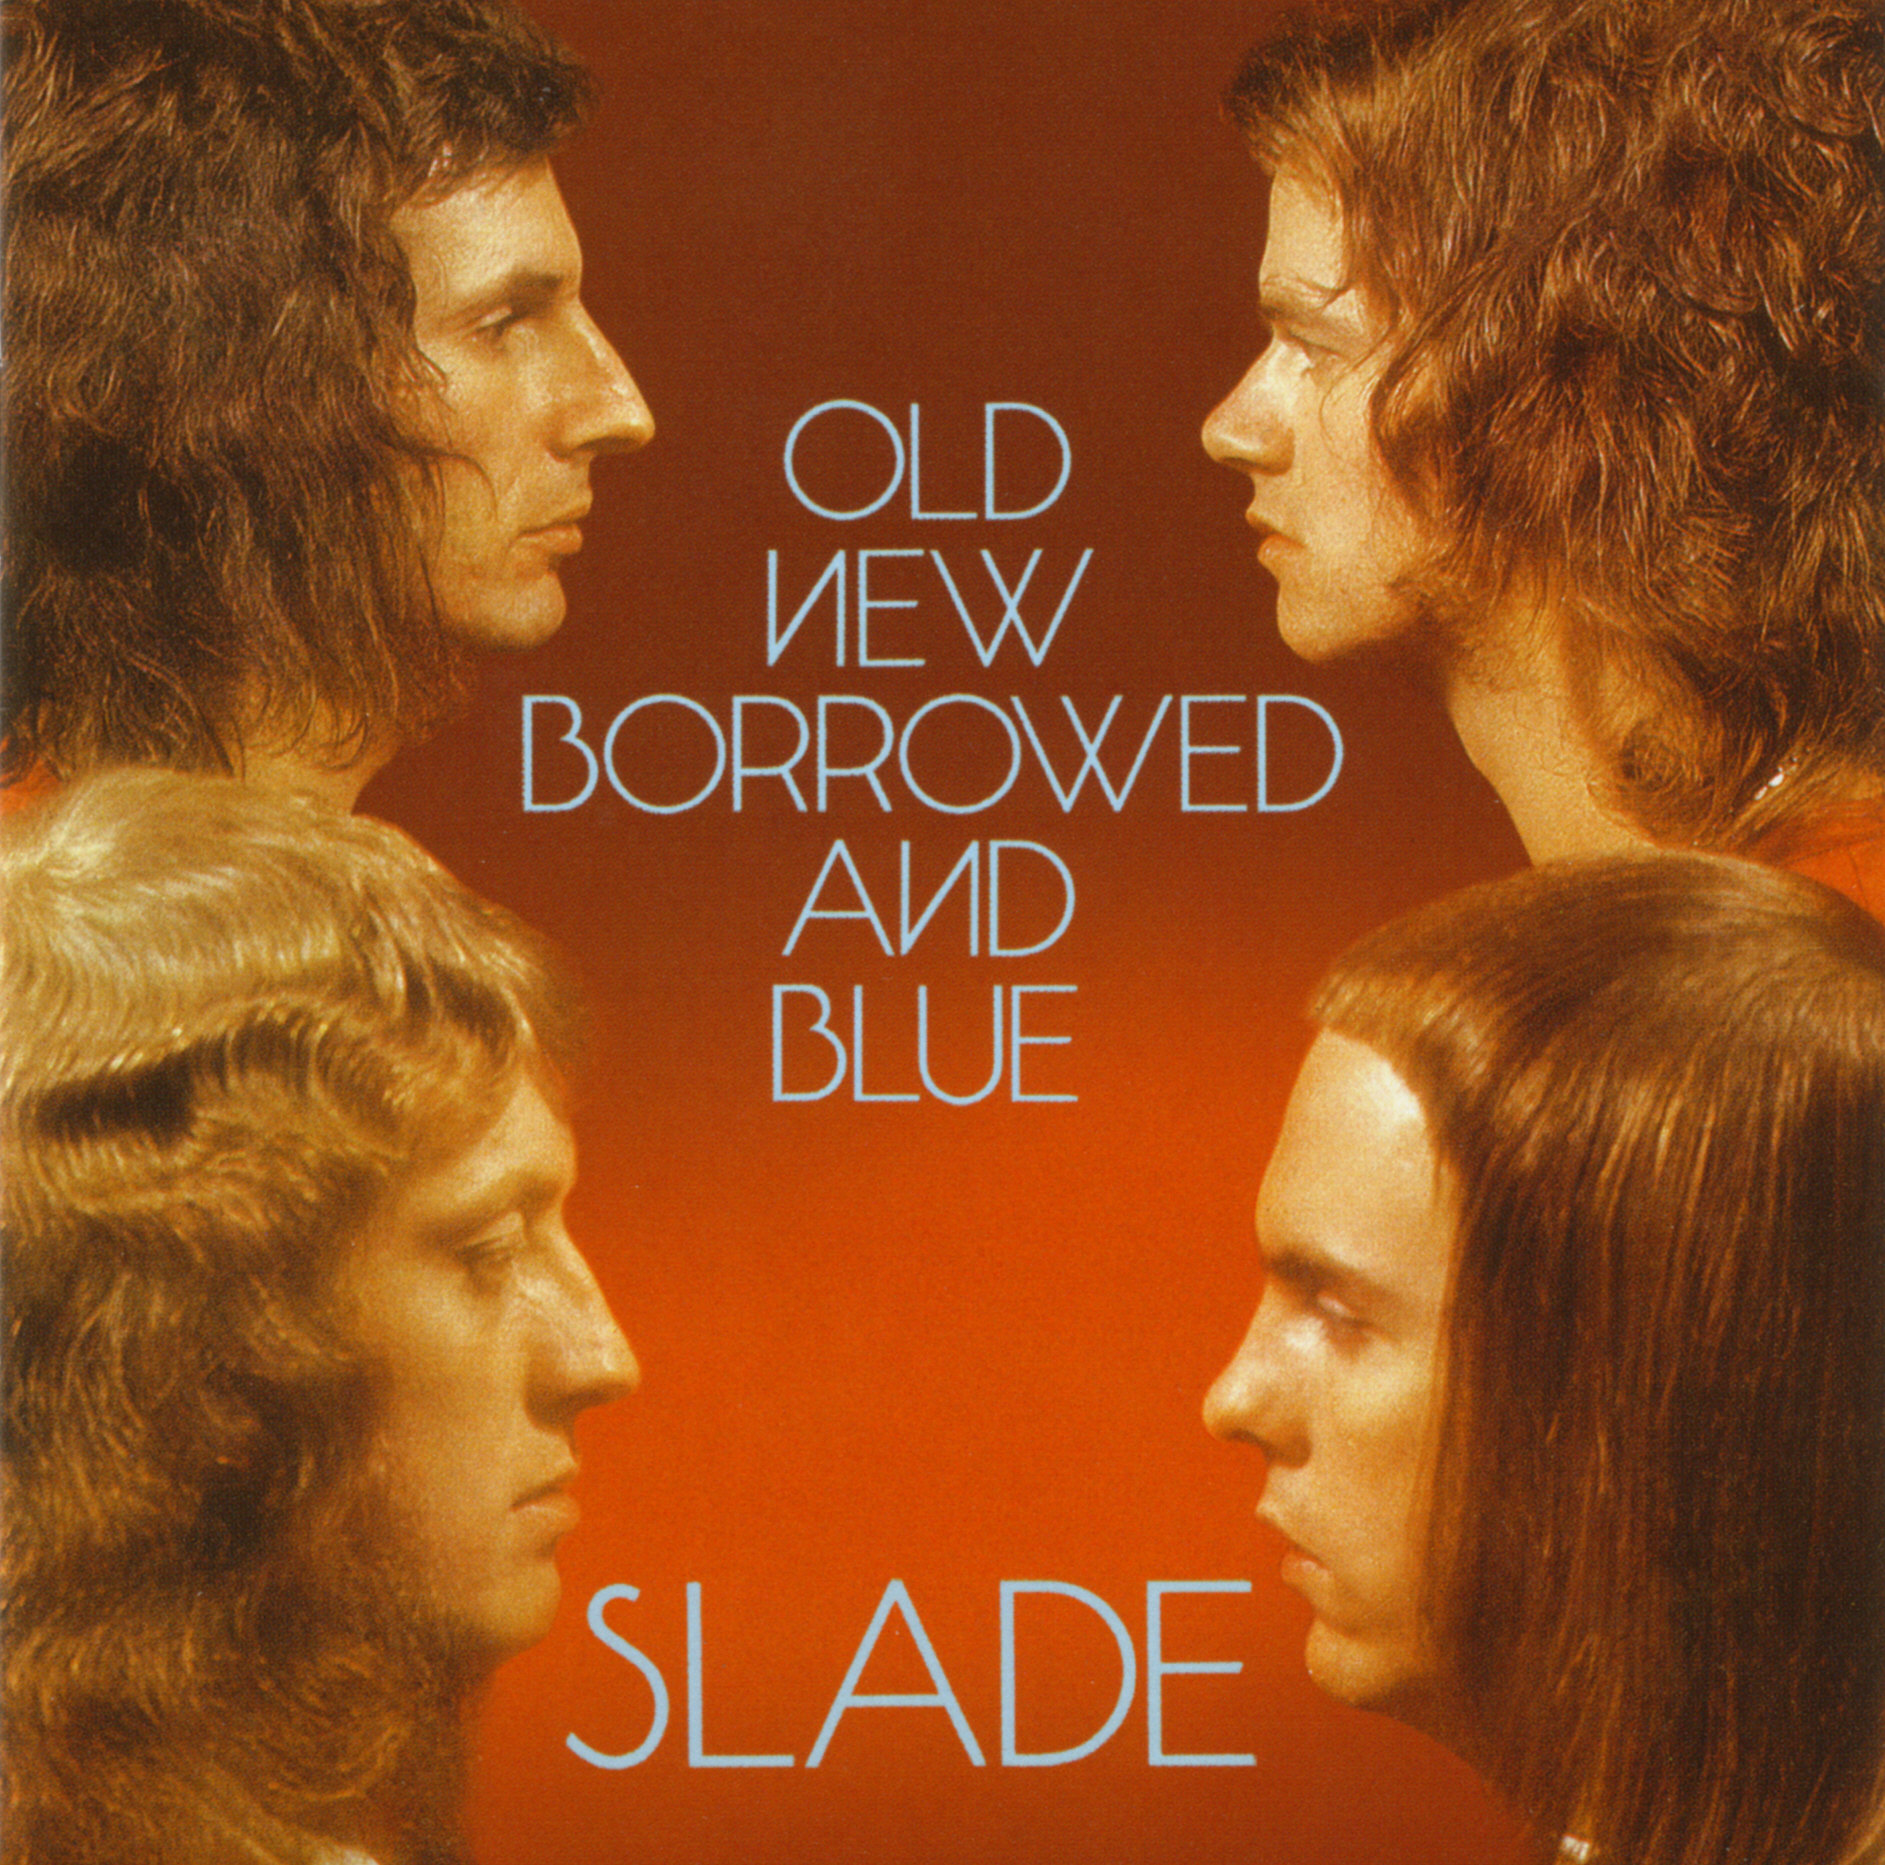 ... slade - old new borrowed and blue - high quality DVD / Blueray / Movie